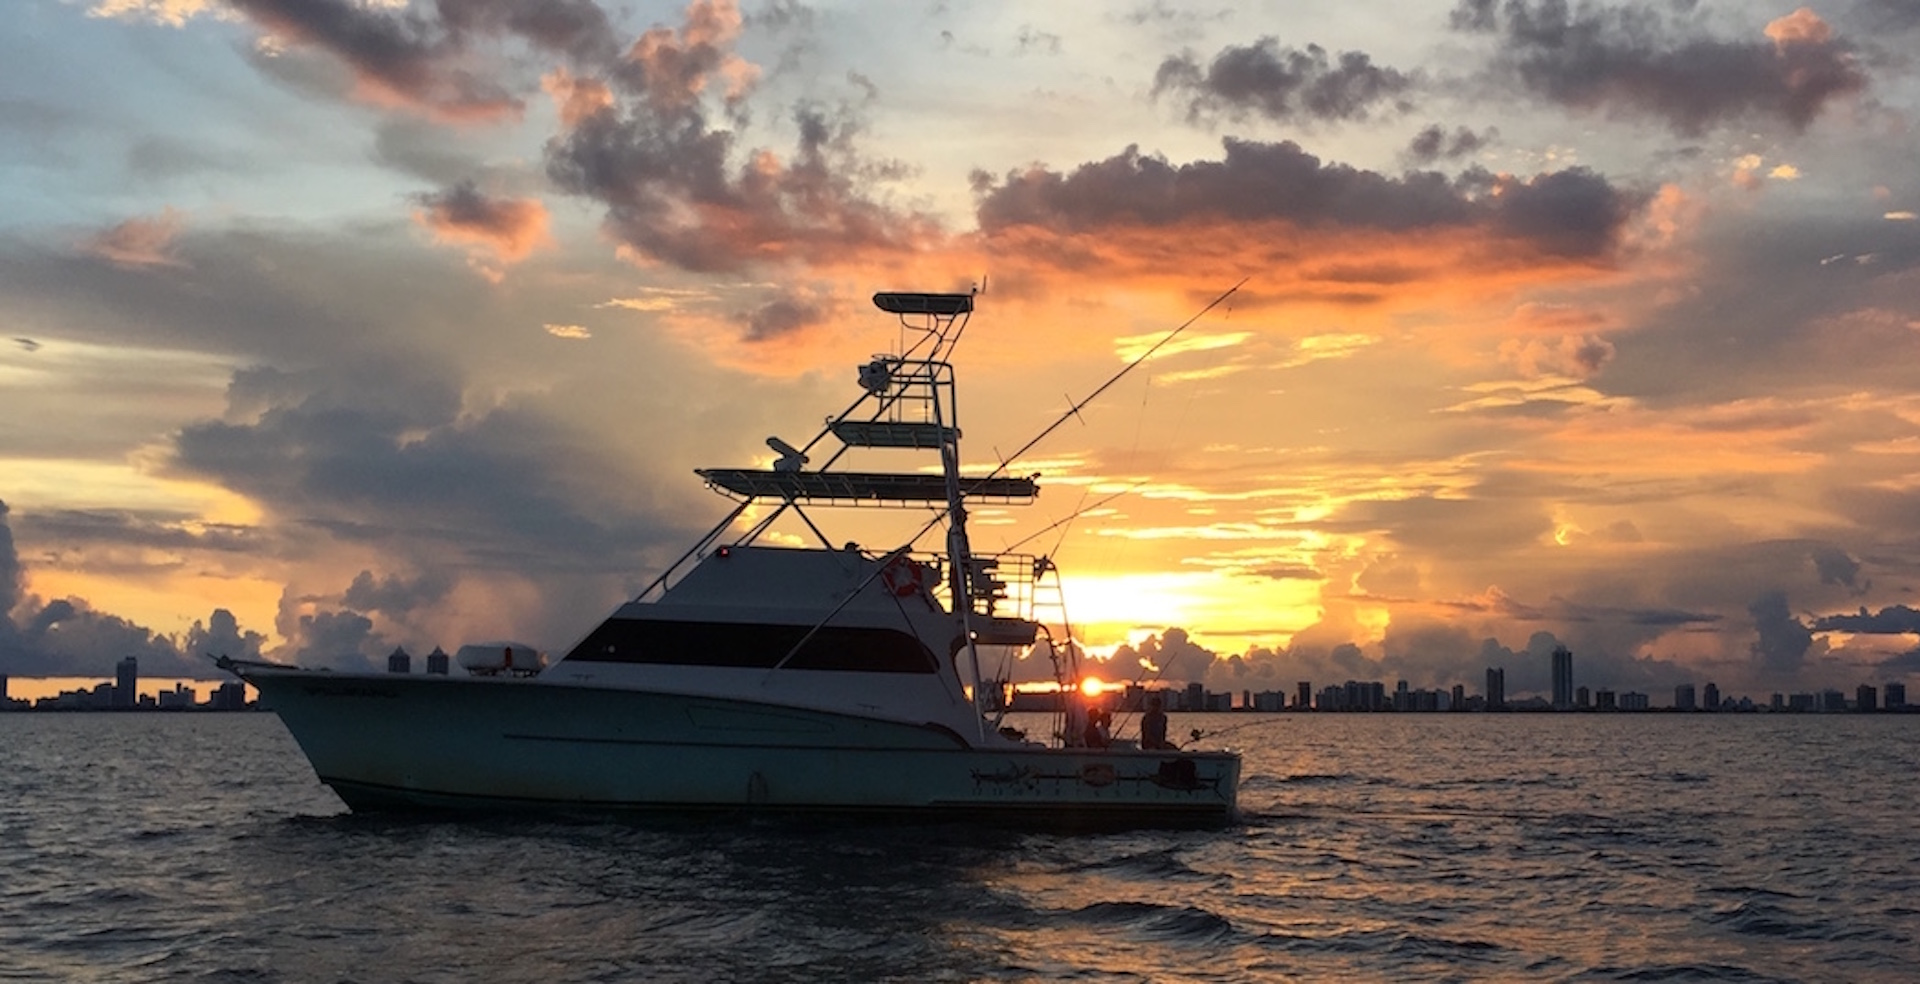 How to chose the rght miami fishing charters for your group for Miami fishing charters